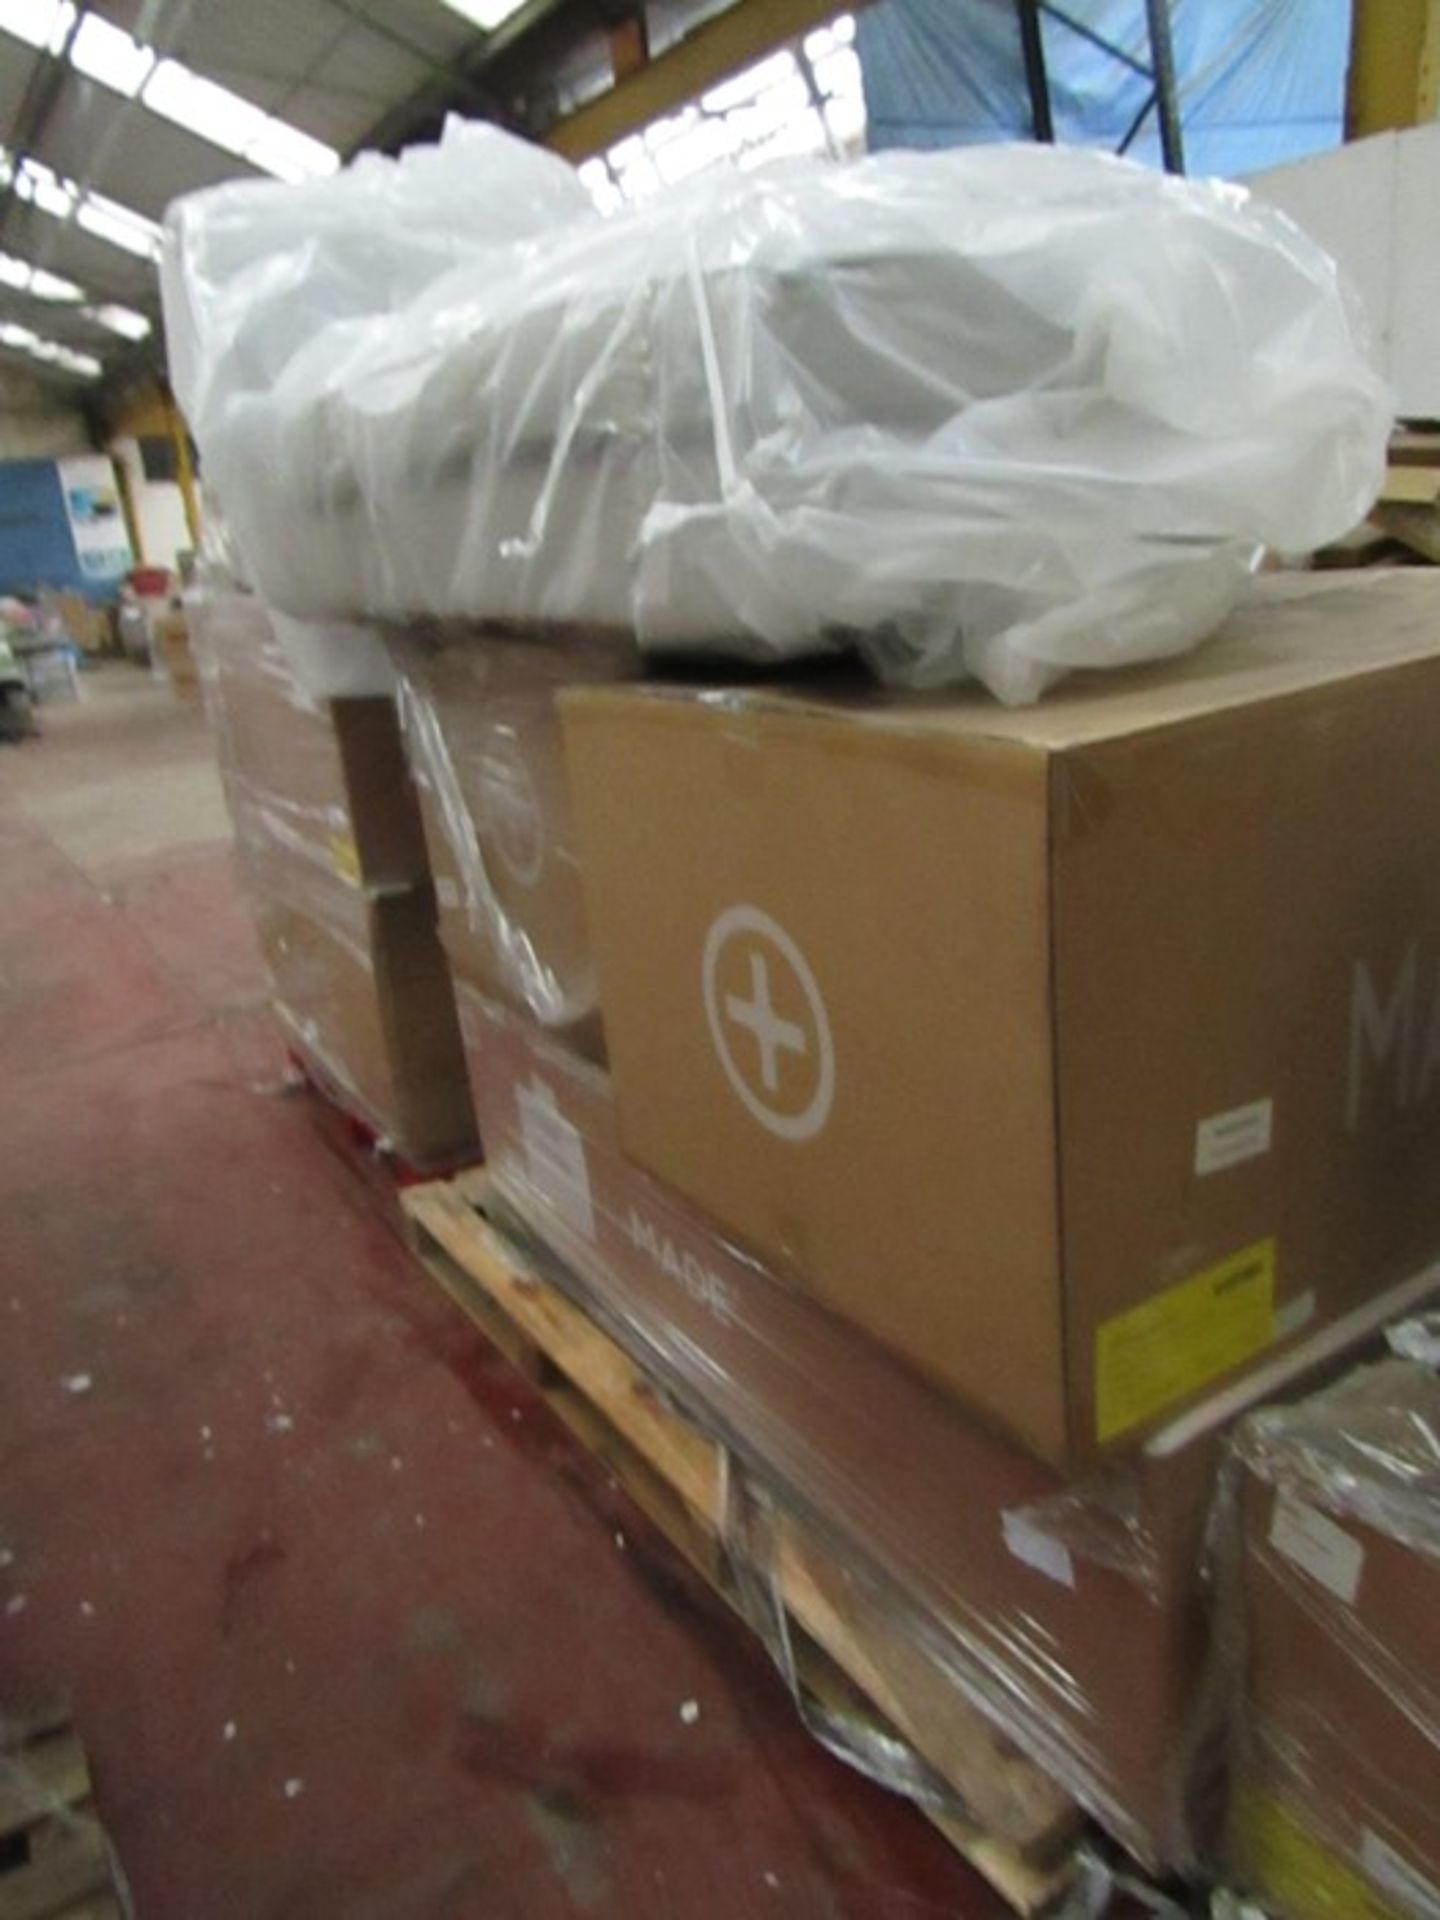   16x   PALLETS OF MADE.COM UNMANIFESTED SOFA PARTS, THESE ARE FROM VARIOUS SOFAS AND DONT APPEAR TO - Image 15 of 34